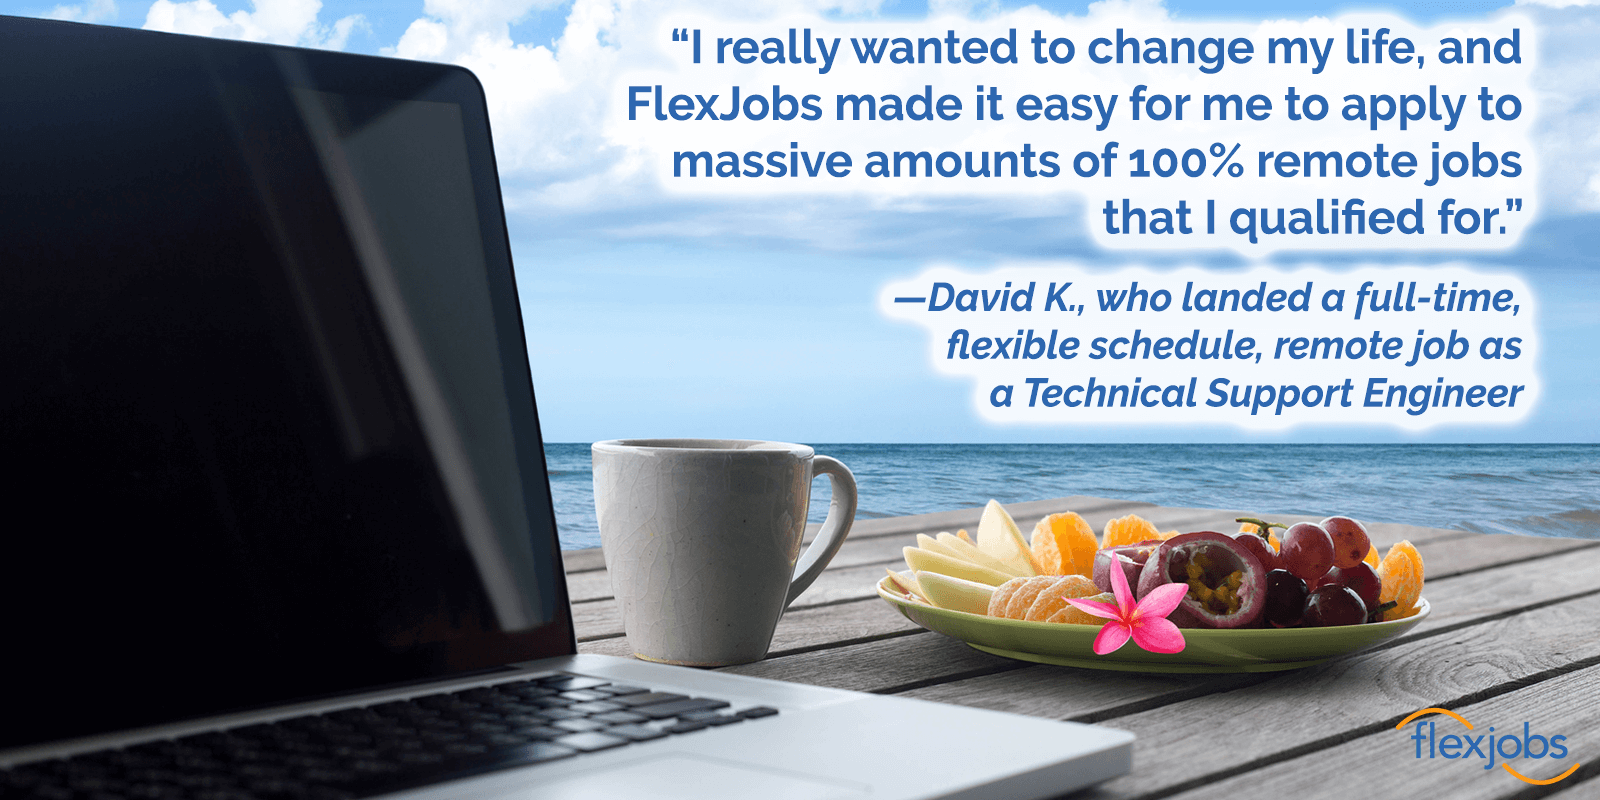 Man Works from Home in Hawaii with Remote IT Job 1